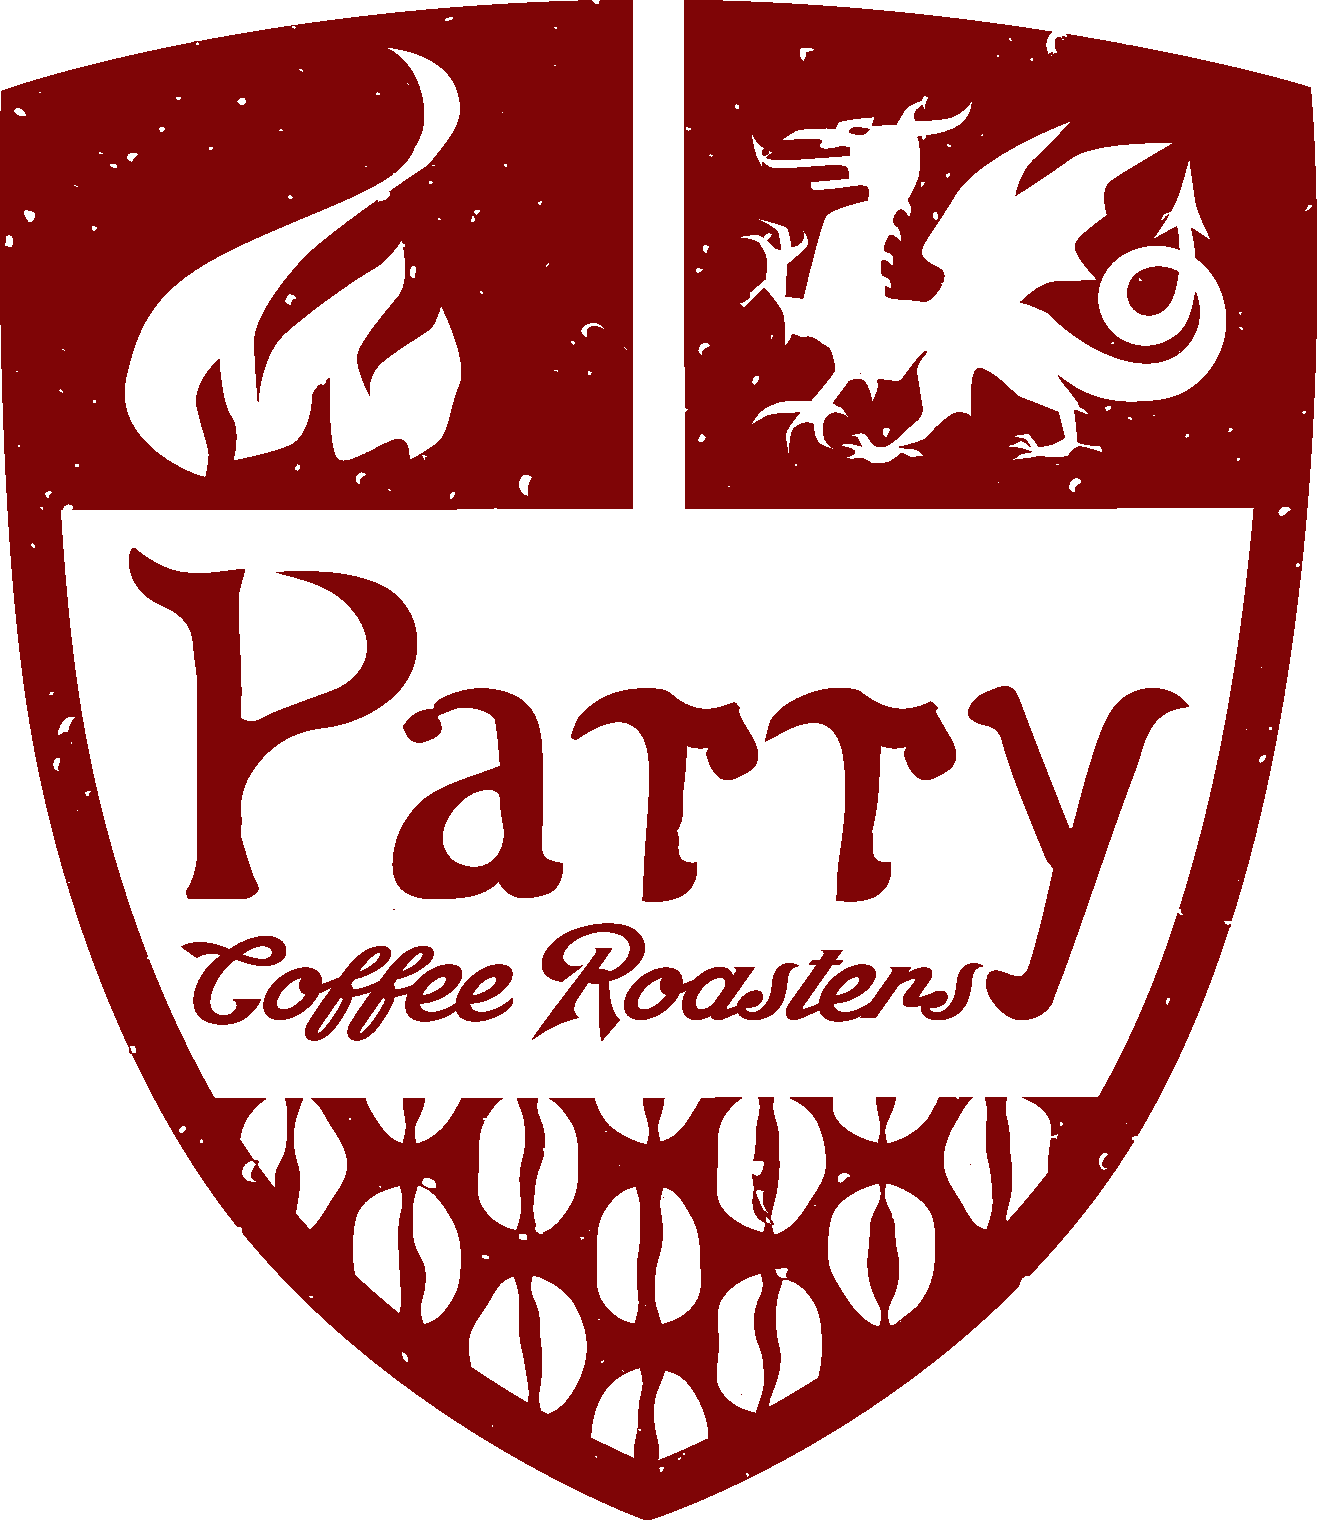 Parry Coffee Roasters